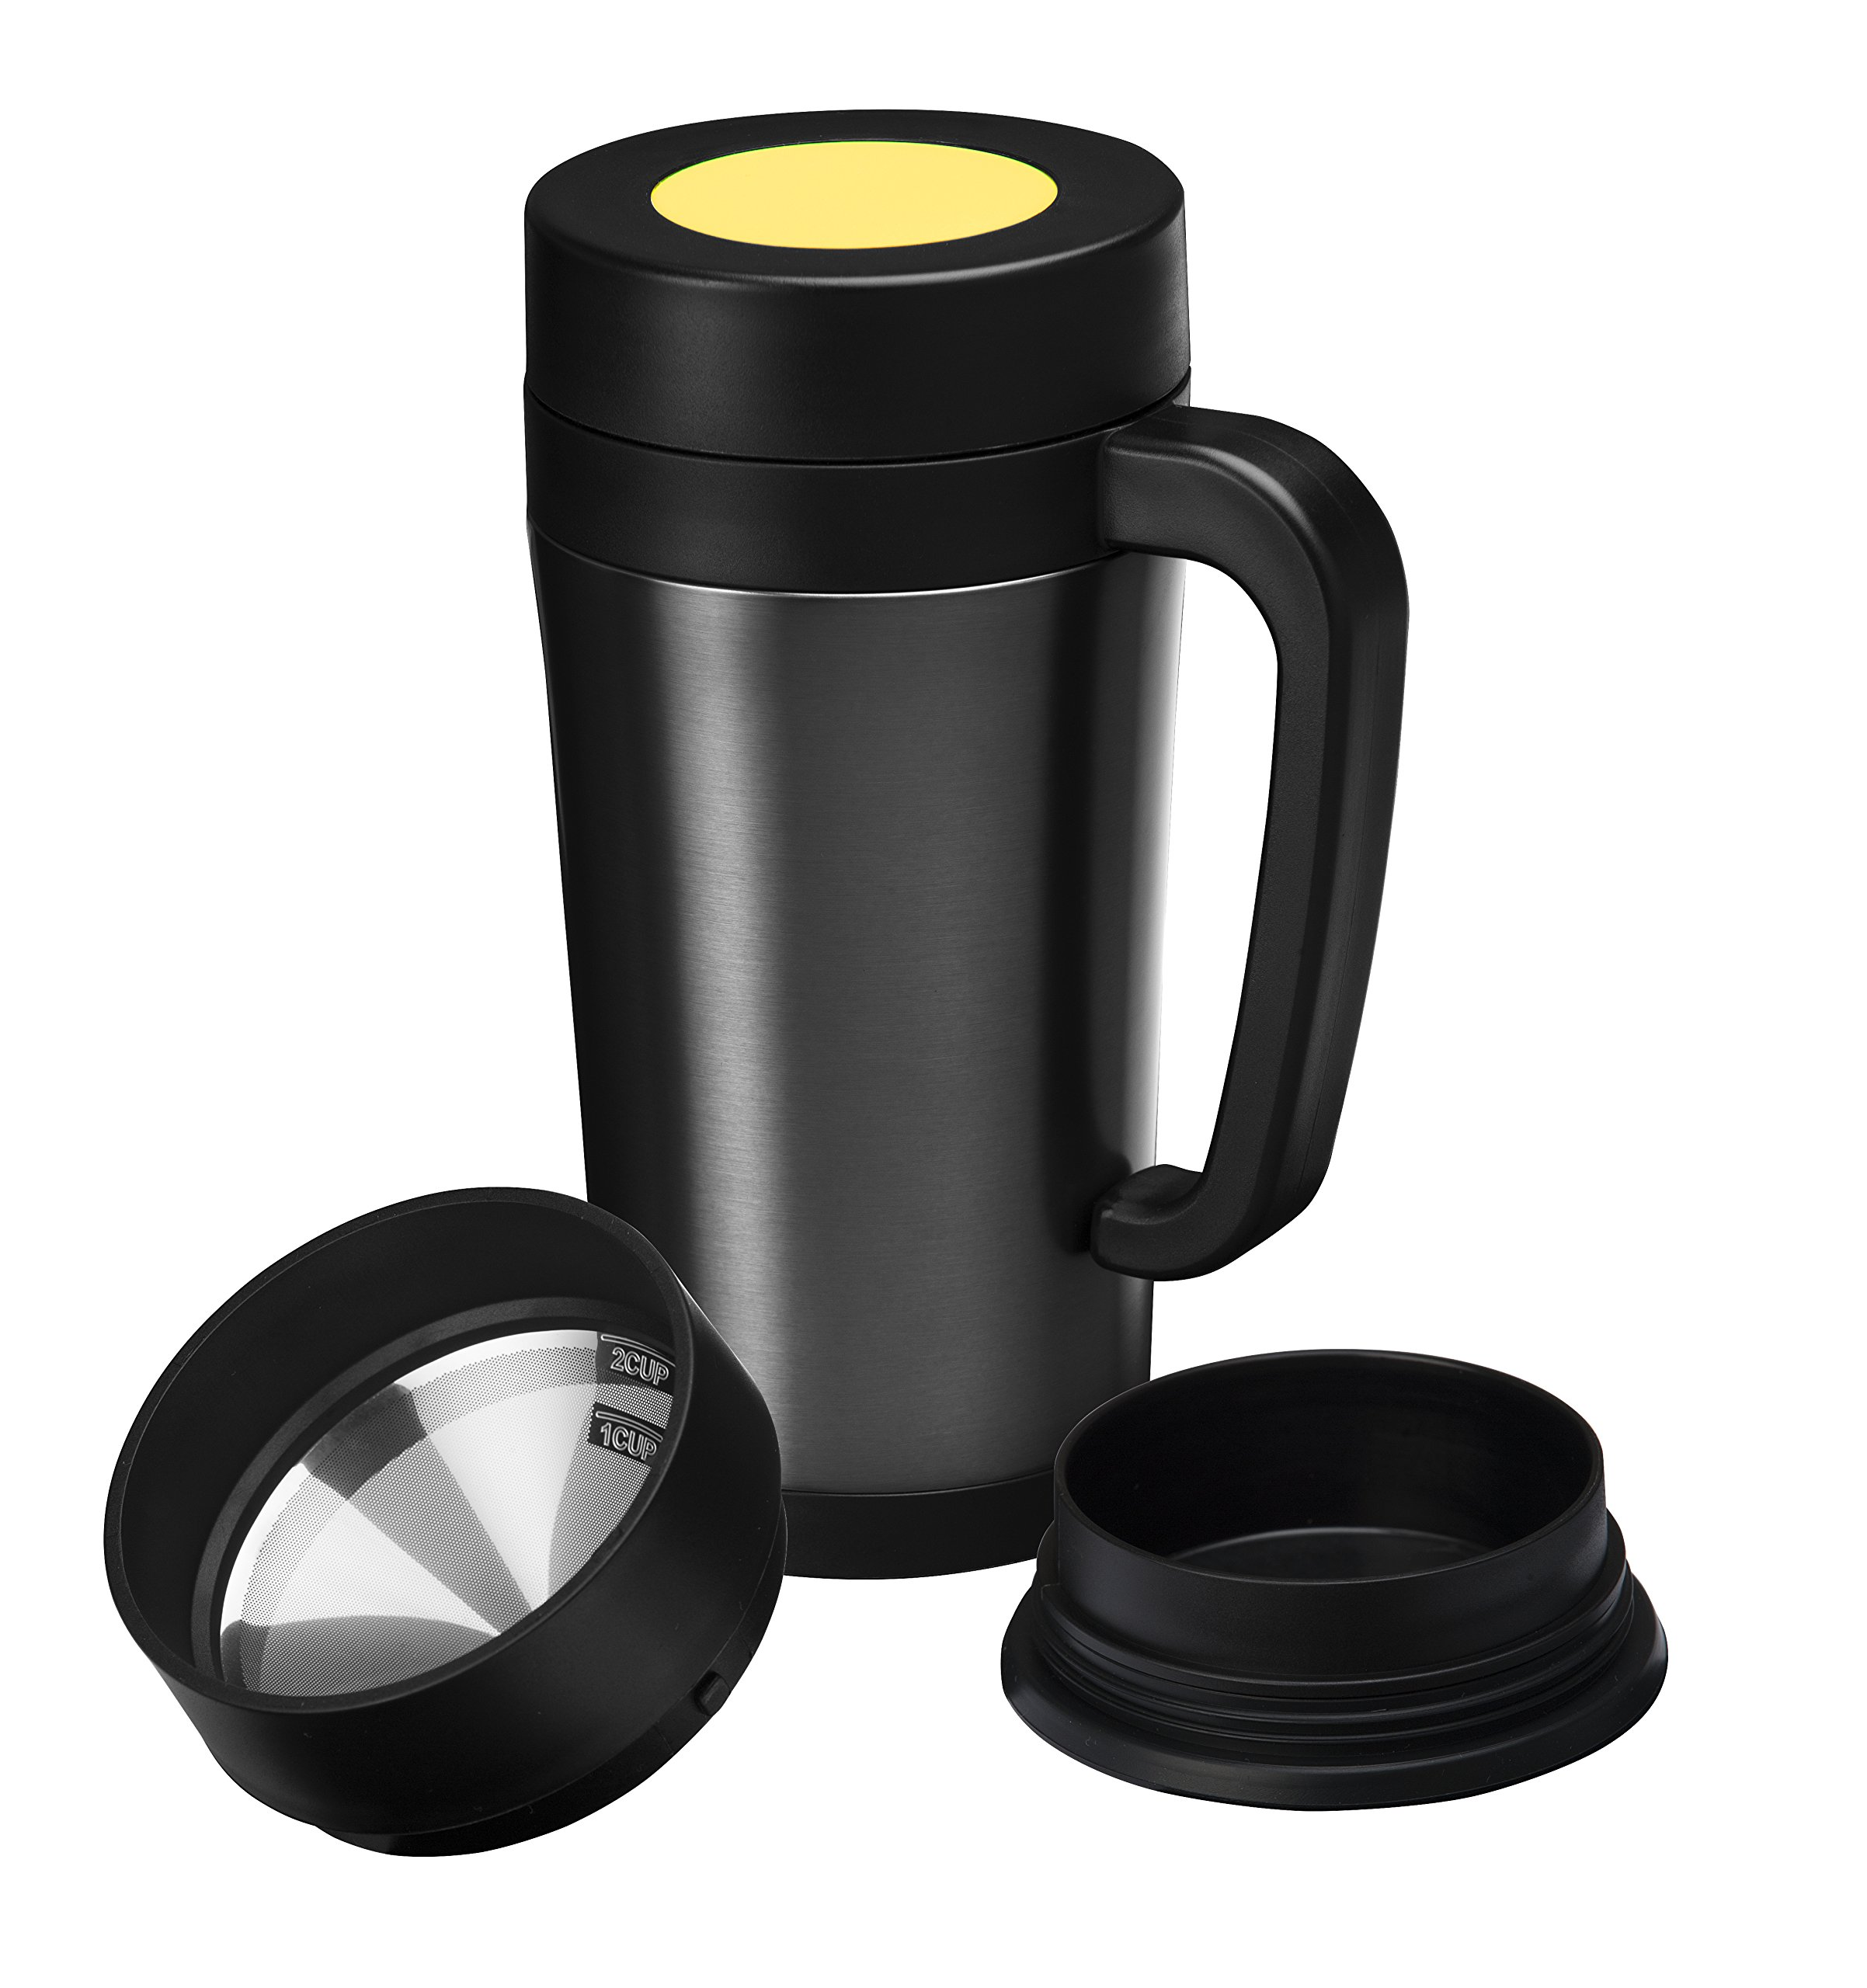 Consumer Associates Pour Over Coffee Maker Thermal Travel Mug Built-in Stainless Steel Dripper Double Walled Stainless Steel Insulation Reusable Paperless Filter